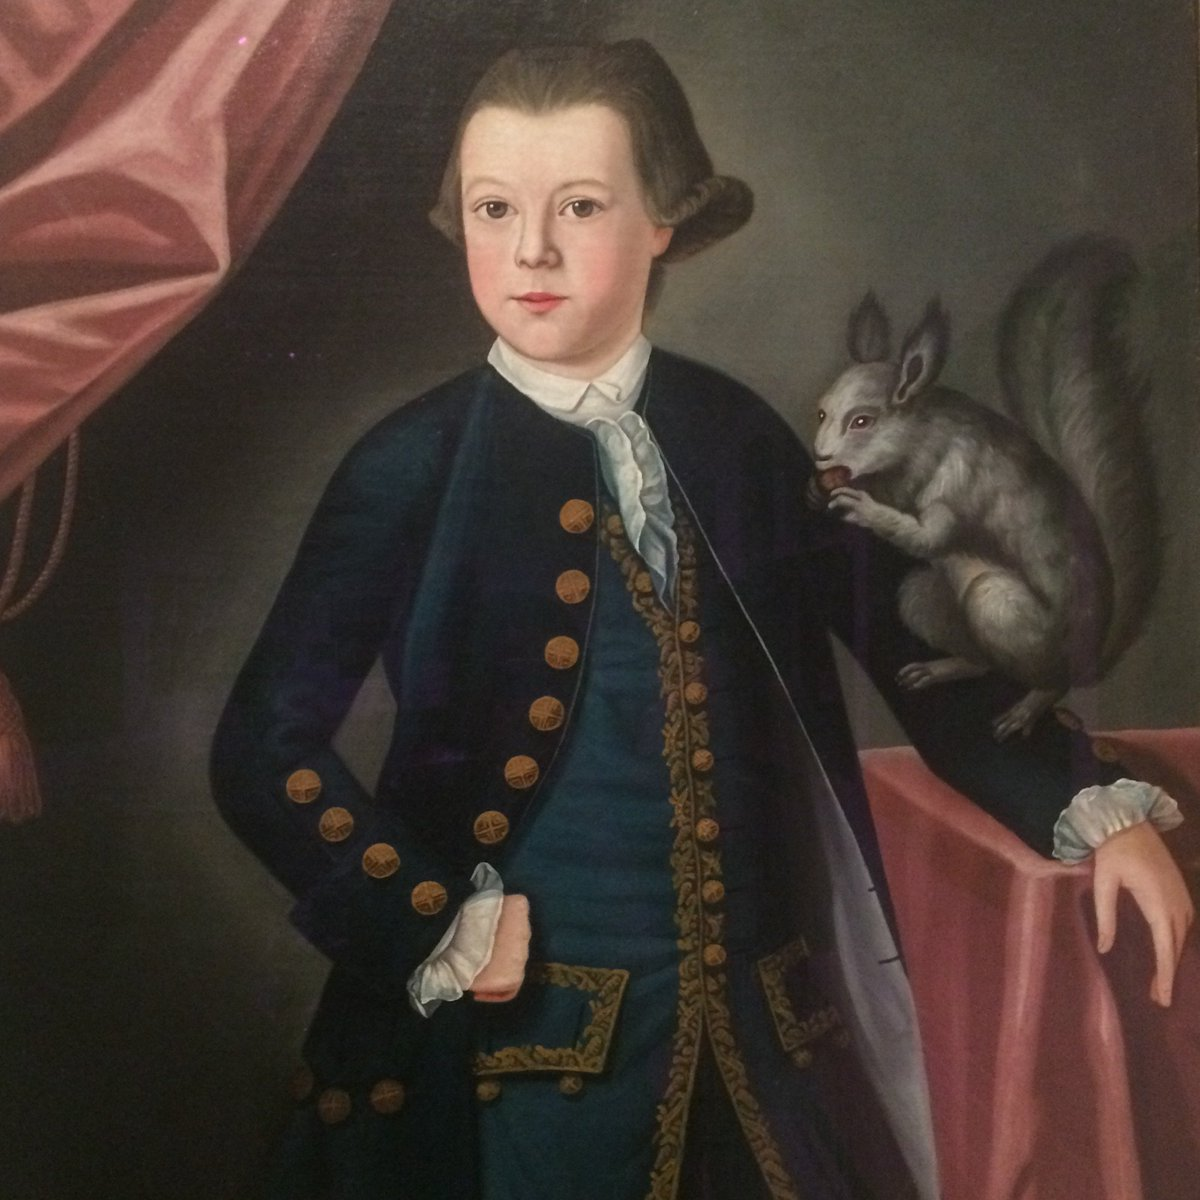 COLONIAL MAN: My kid wants his pet squirrel in the portrait, is that cool? PORTRAIT ARTIST: Yeah, sure.  COLONIAL MAN: Do you know how to draw a squirrel?  PORTRAIT ARTIST: I know how to draw a black-eyed demon from the deepest pits of Hell.  COLONIAL MAN: Close enough.